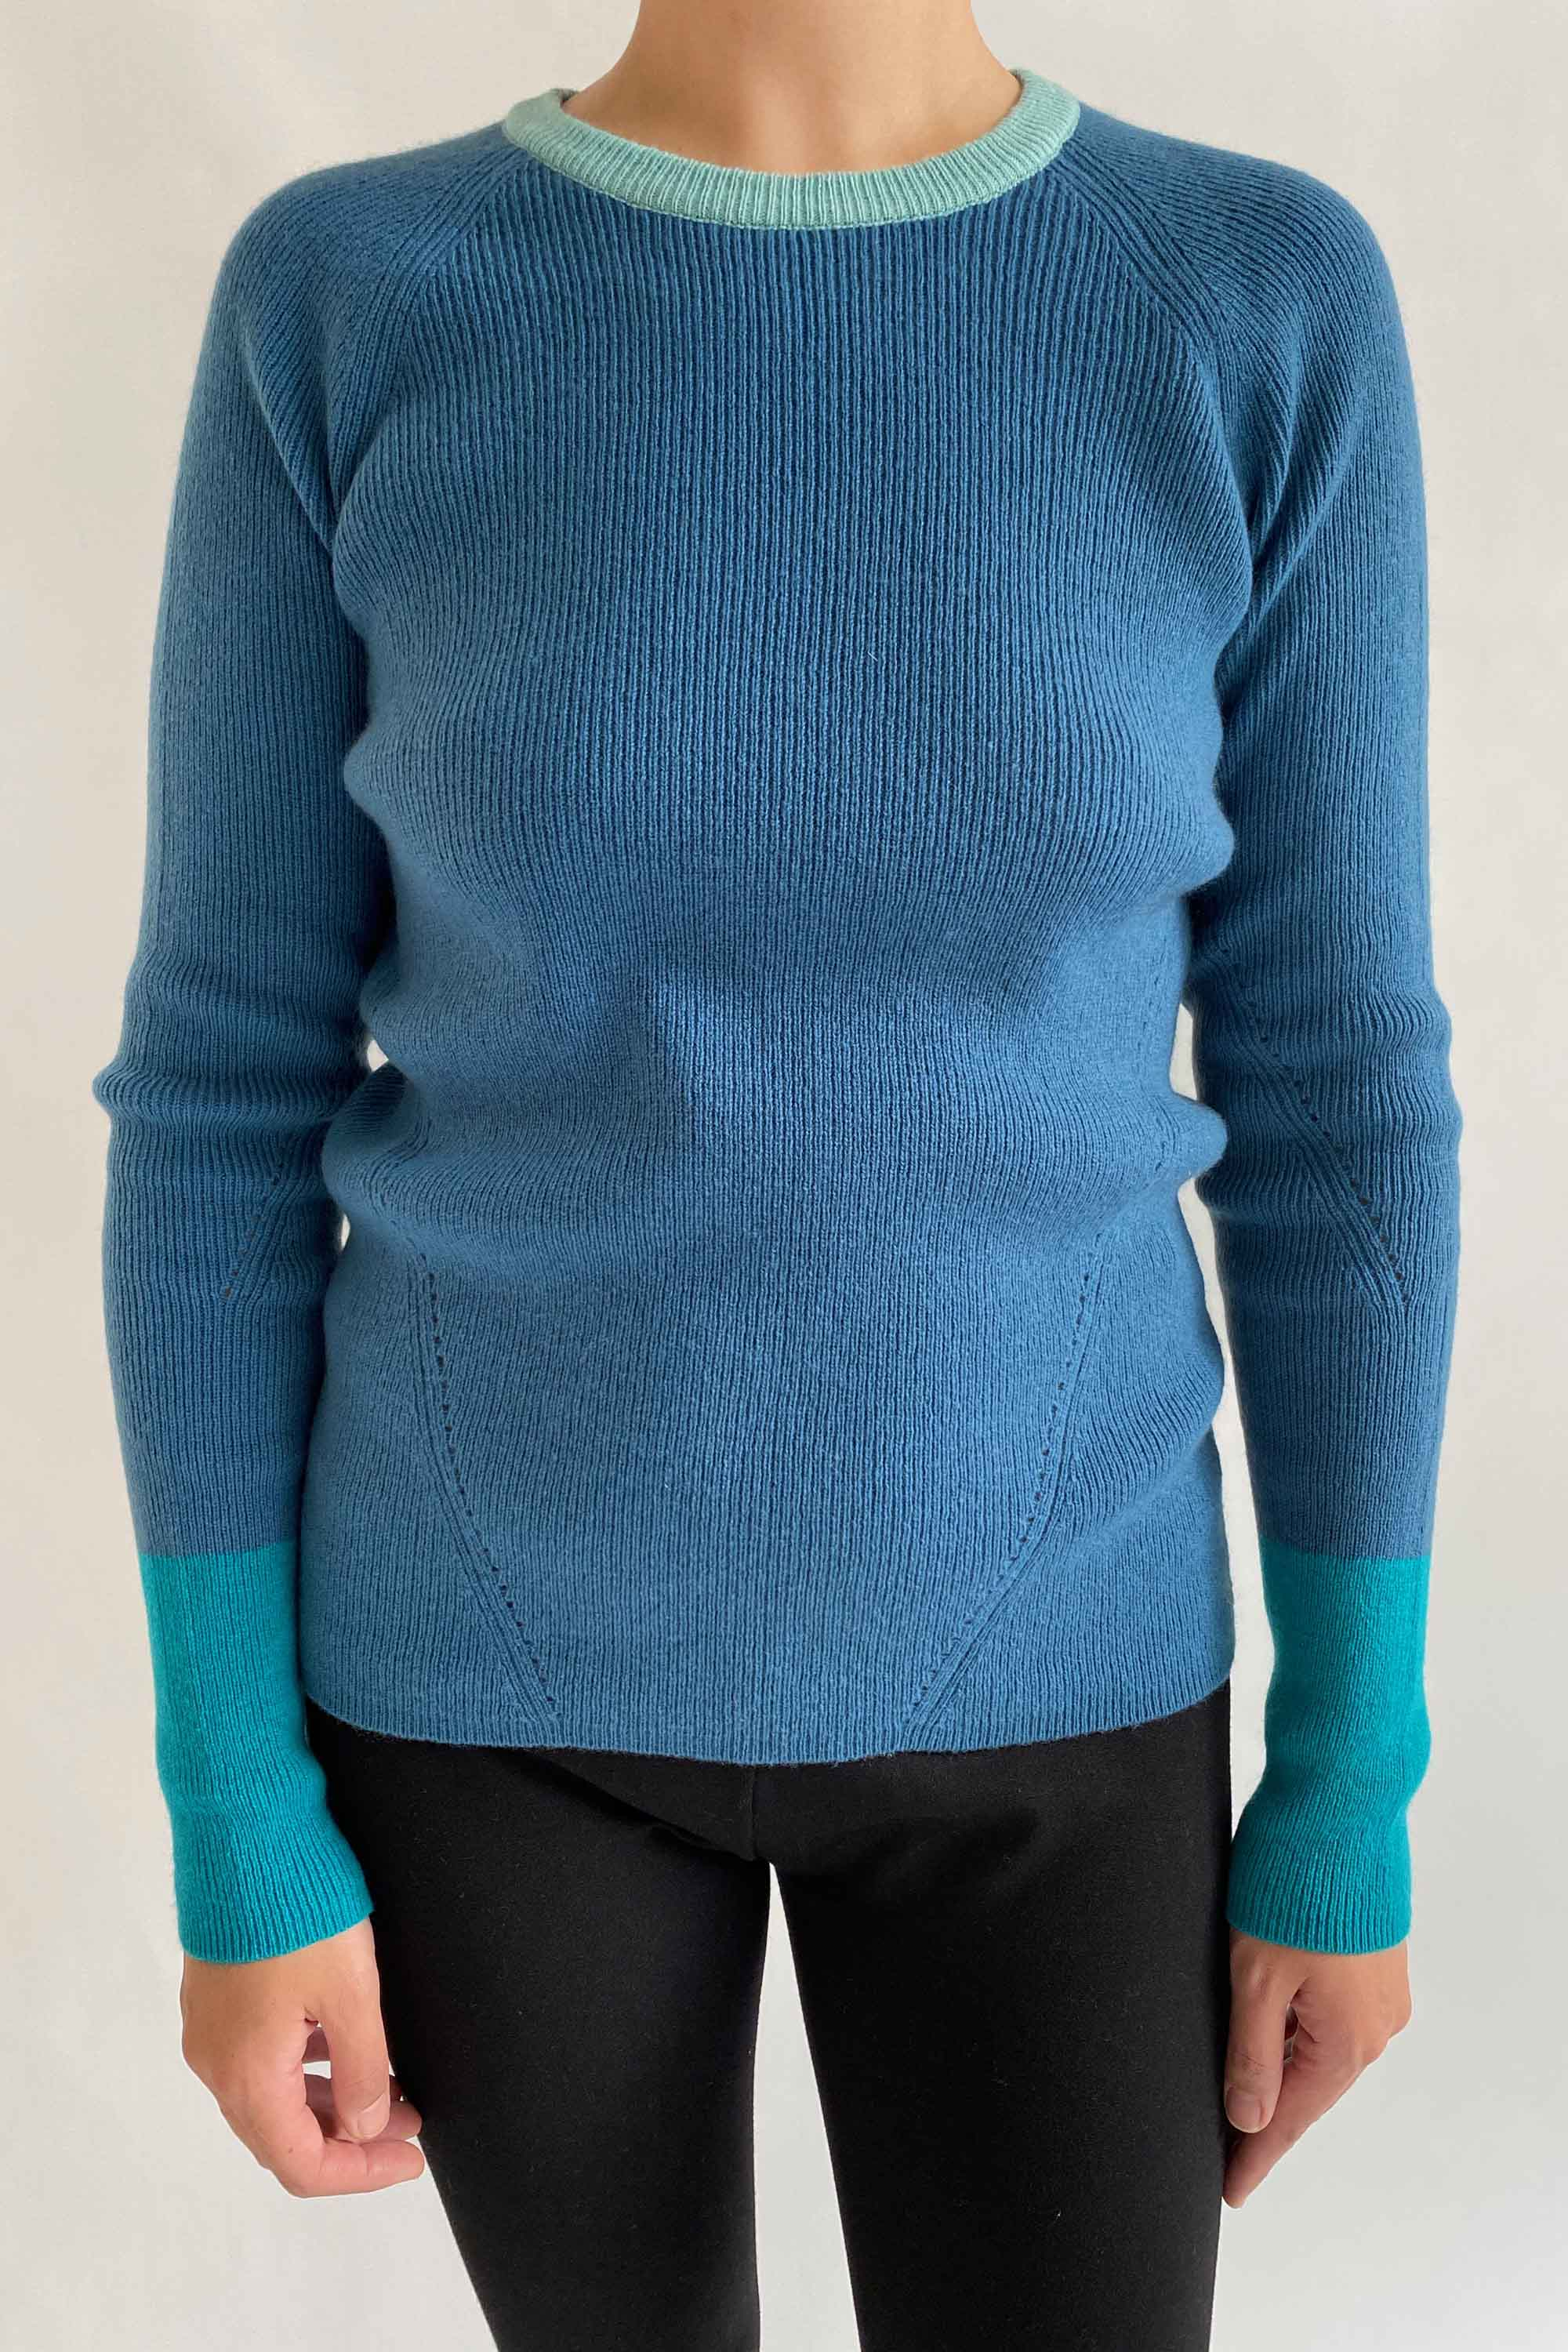 100% pure cashmere thick colour block jumper in teal blue turquoise